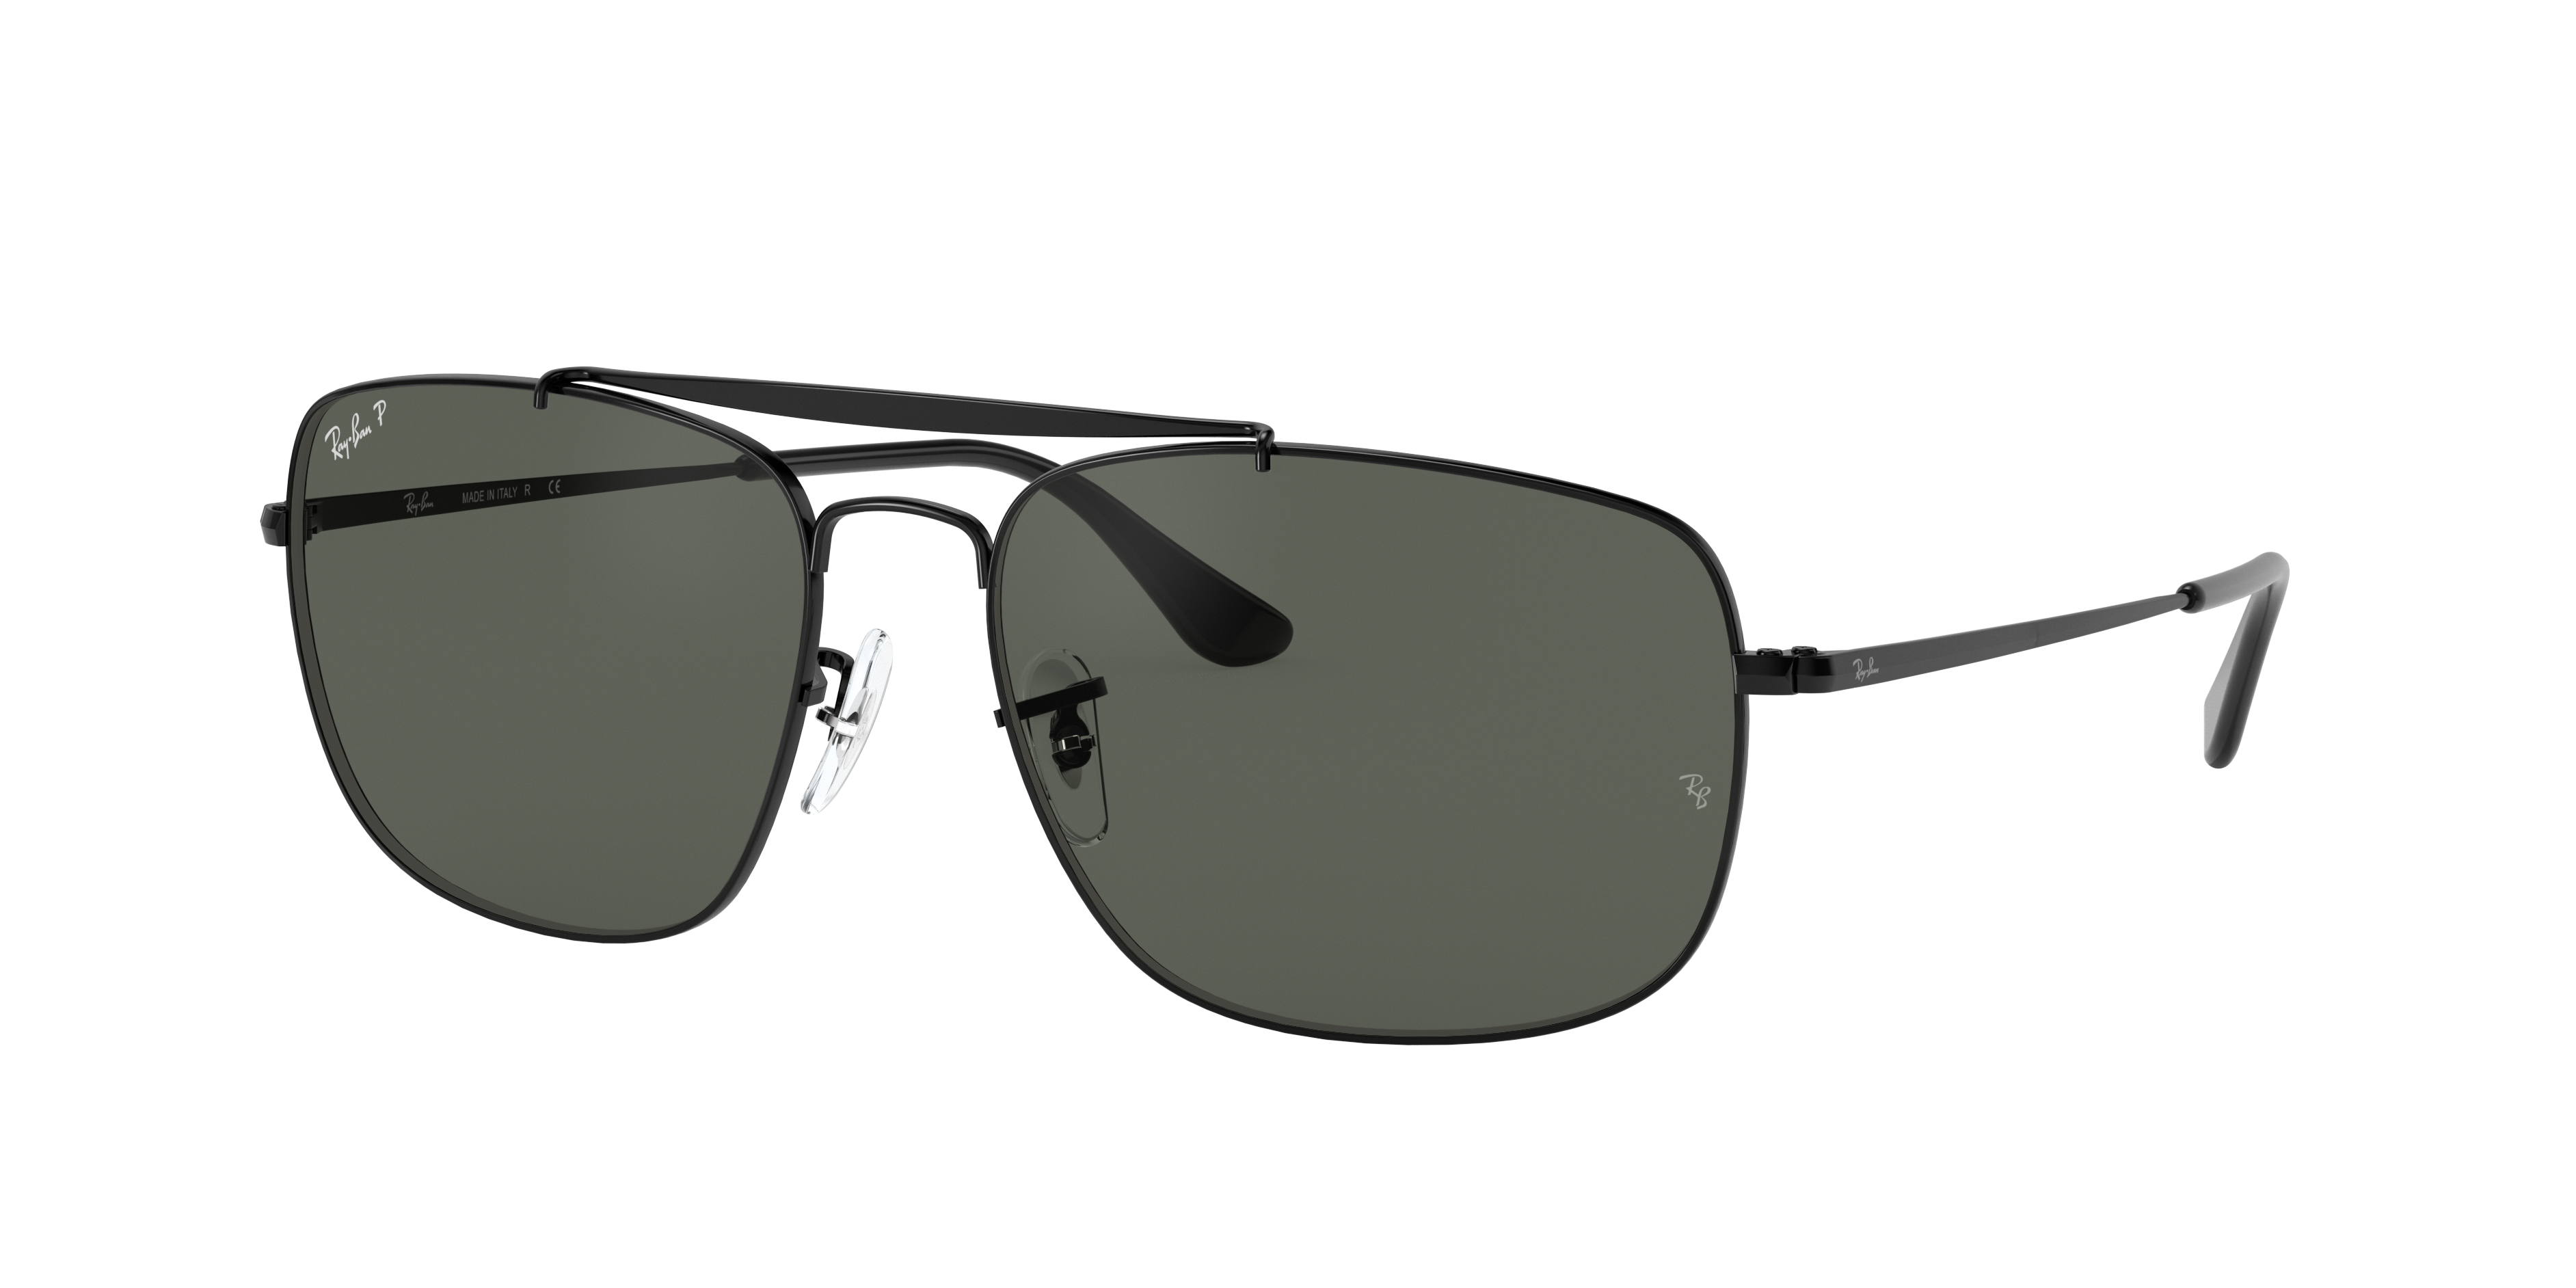 Ray-Ban Colonel Black, Polarized Green Lenses - RB3560